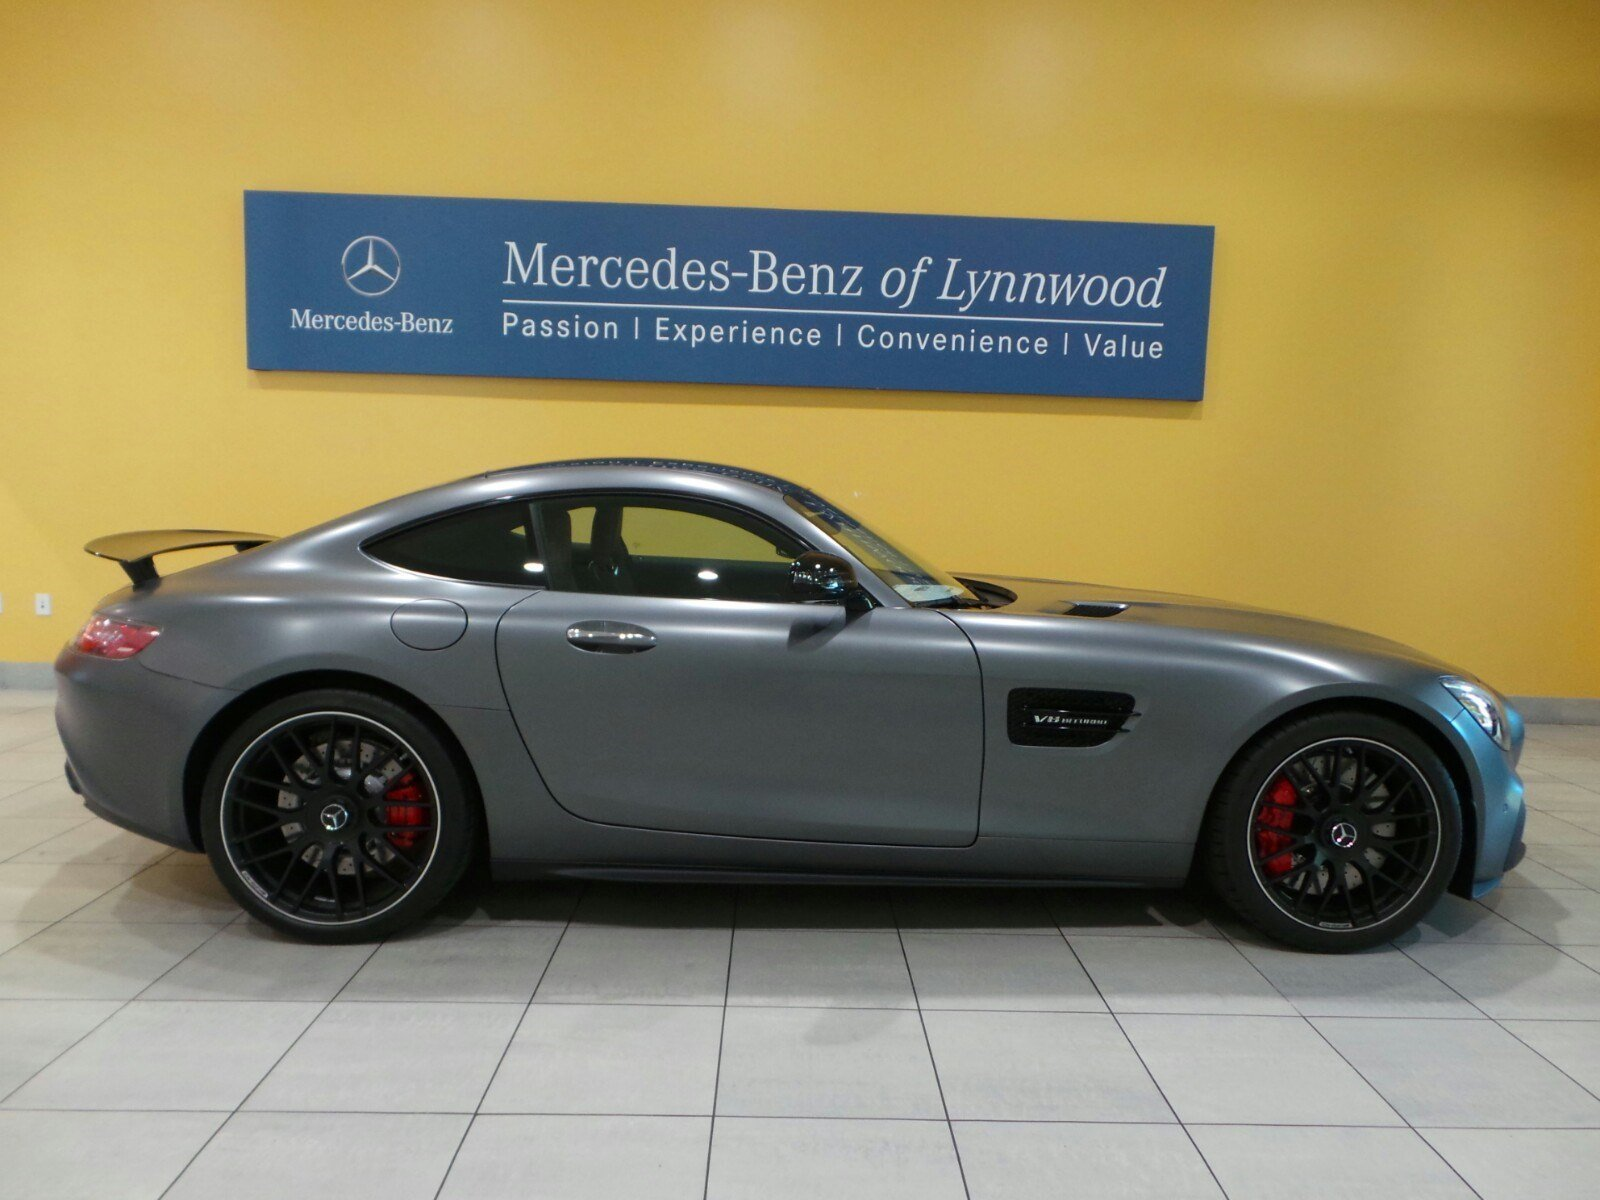 New 2017 mercedes benz amg gt amg gt s coupe coupe in for 2017 mercedes benz amg gt msrp